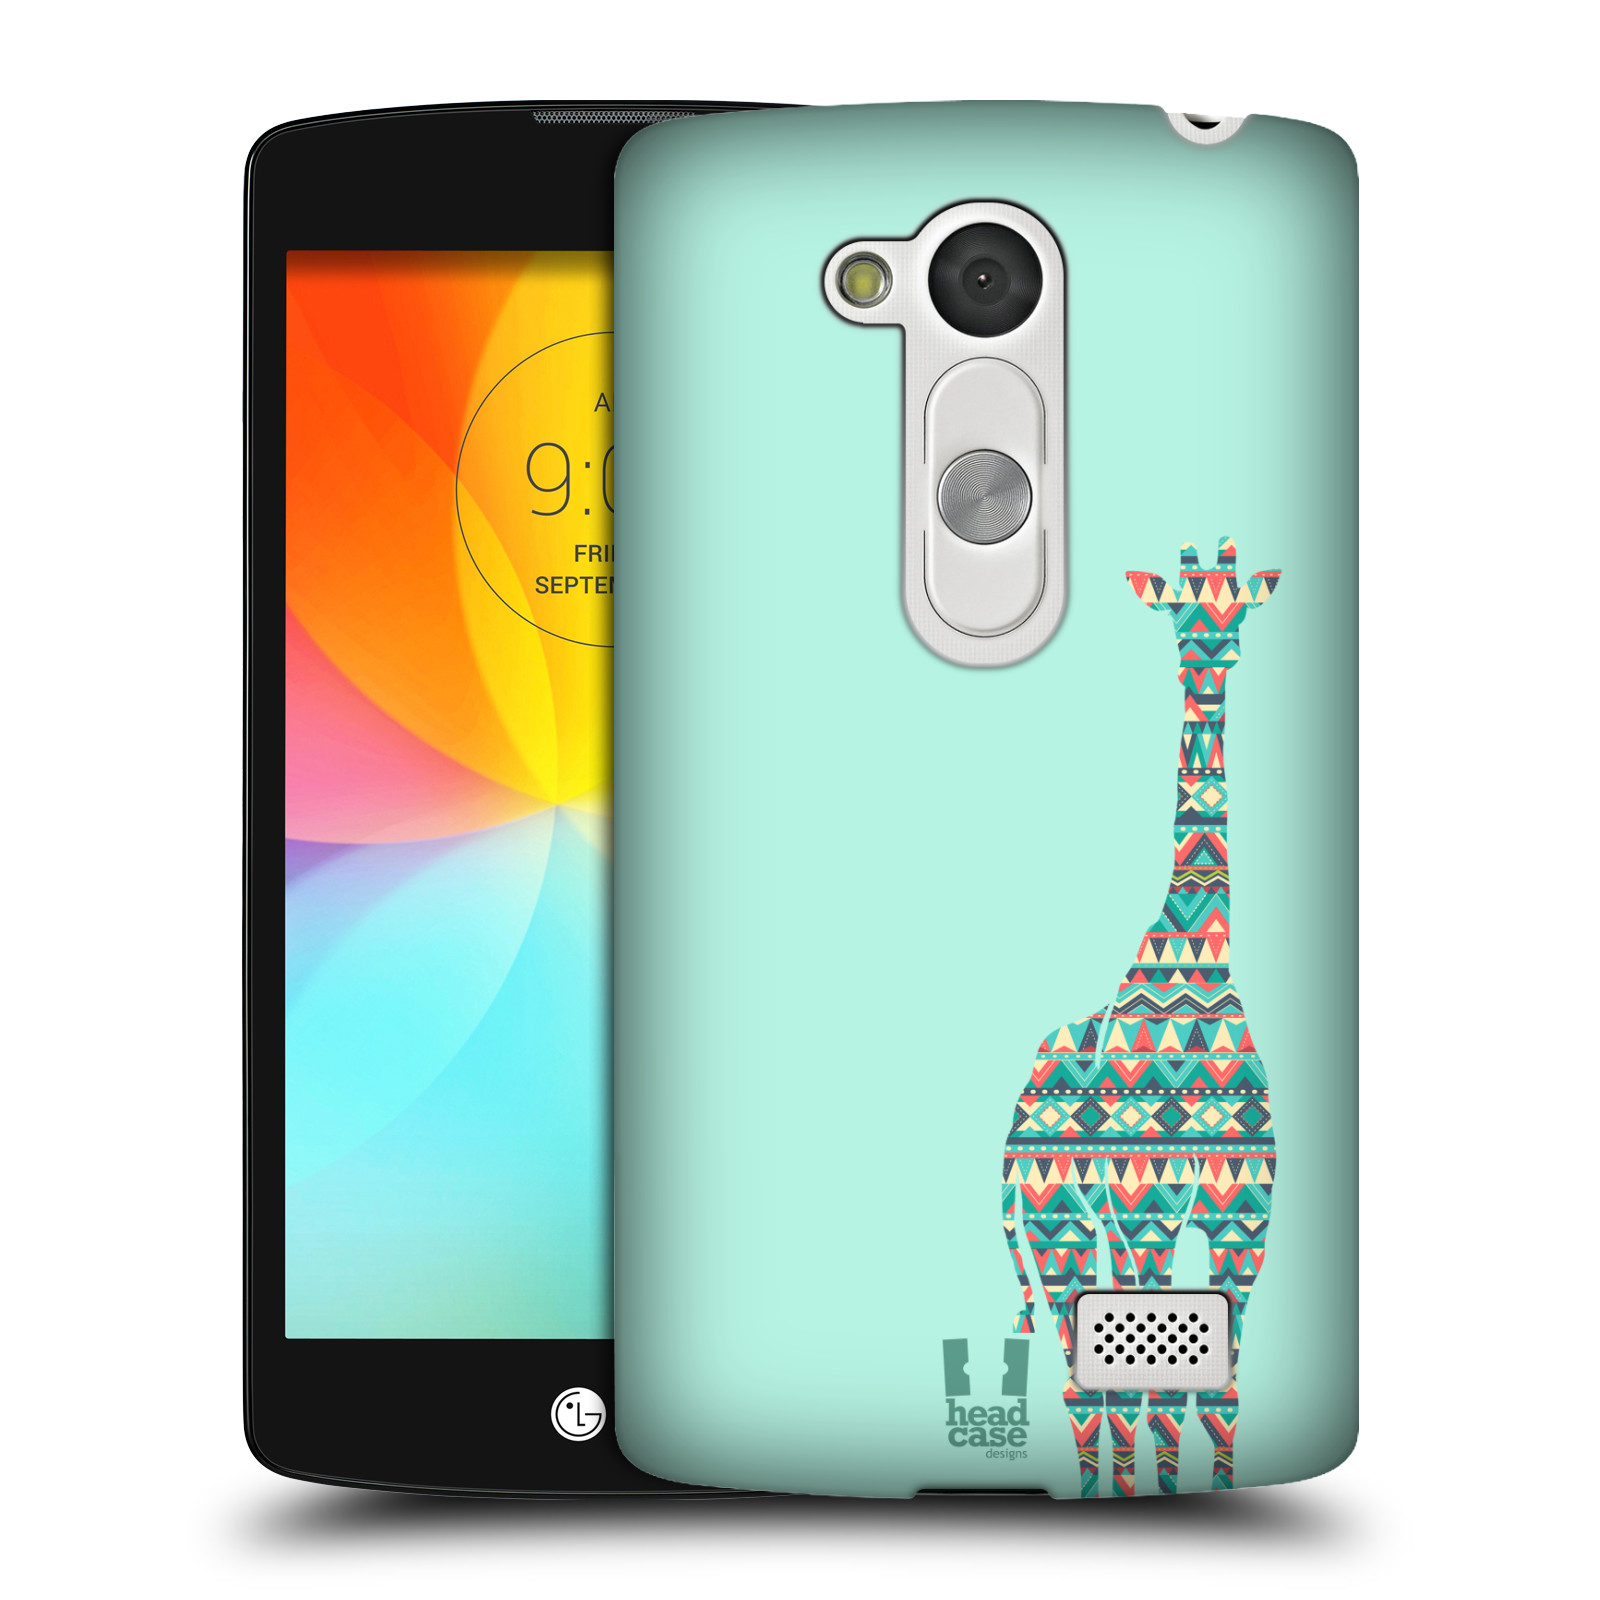 HEAD CASE DESIGNS PATTERNED ANIMAL SILHOUETTES CASE FOR LG L FINO D290N